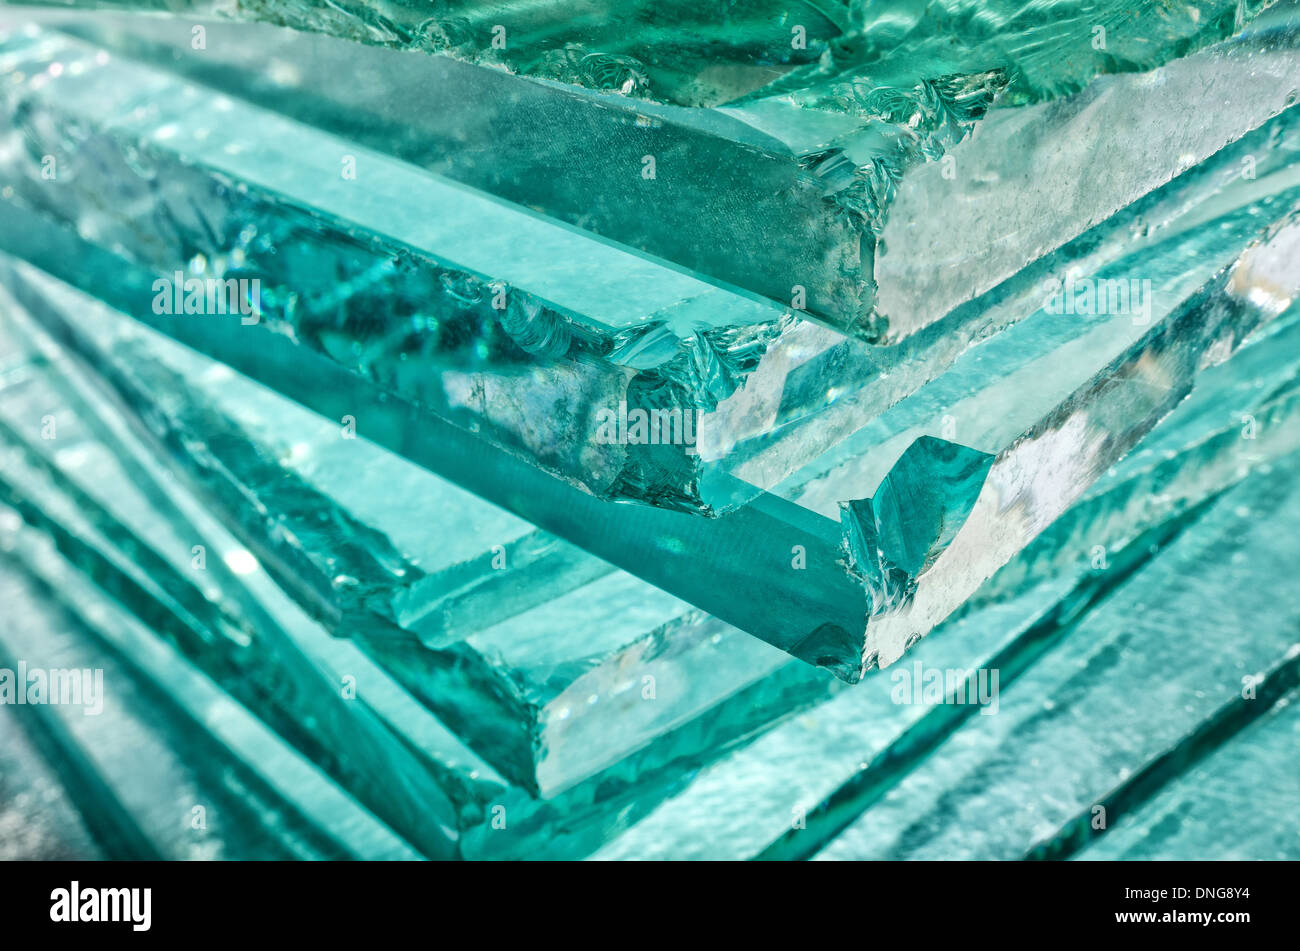 Sharp dangerous edge of plate glass internal reflection brings out green color and depth - Stock Image